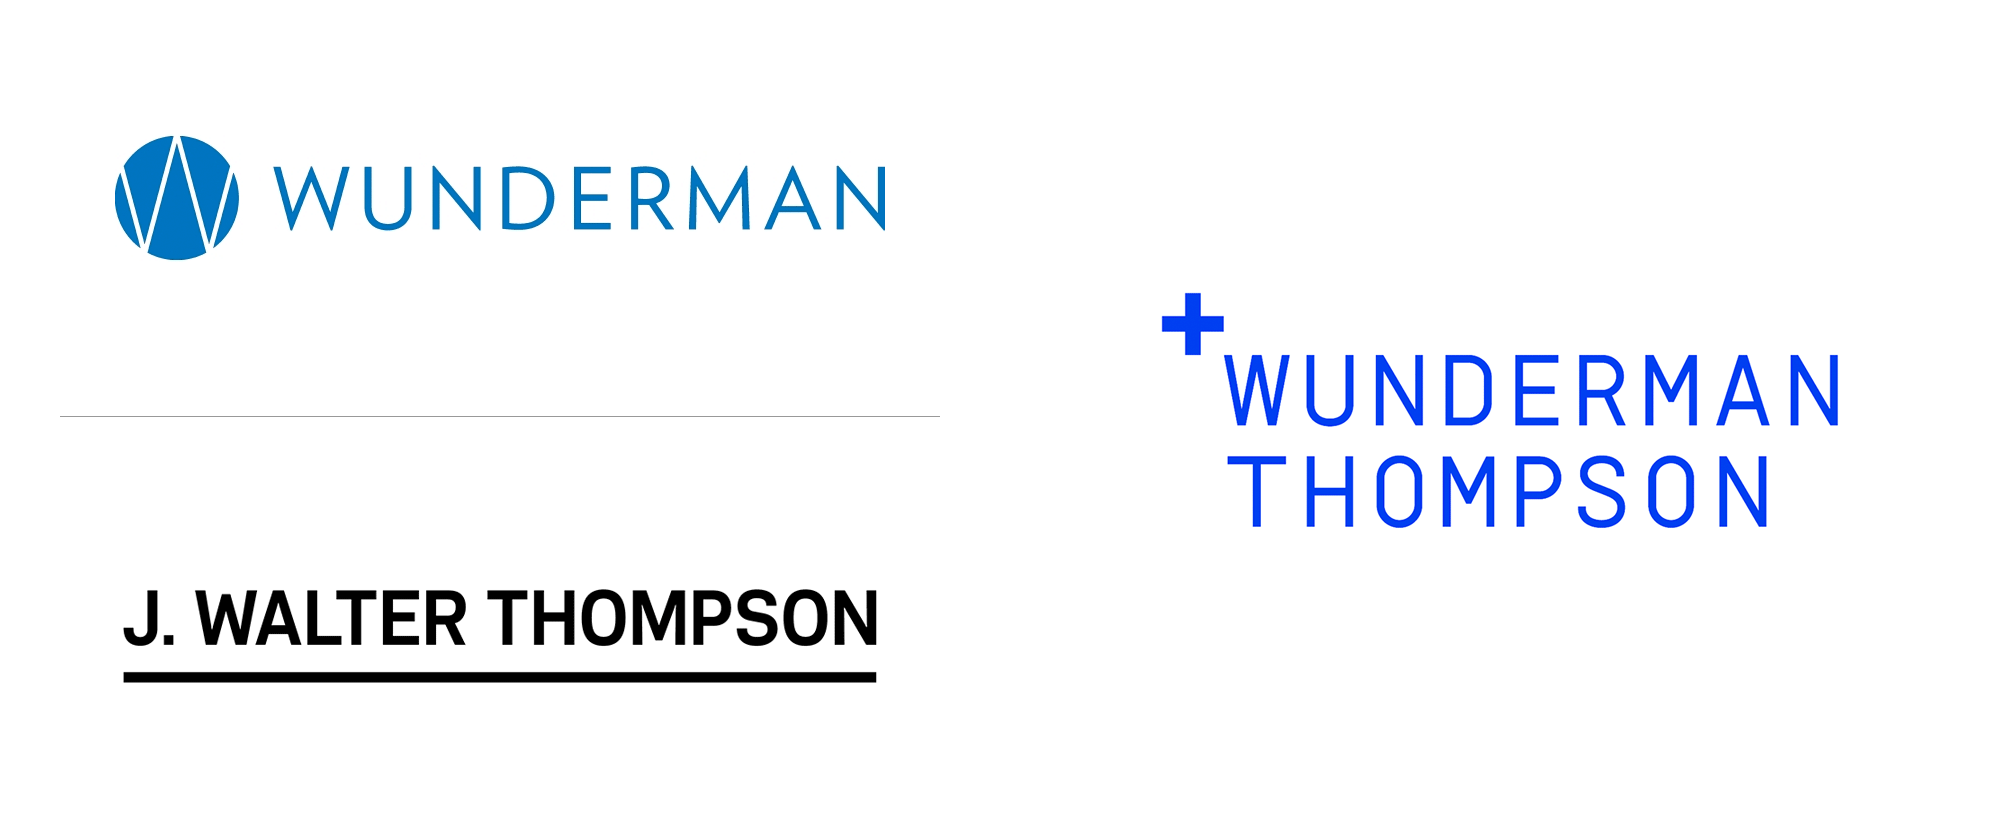 New Name and Logo for Wunderman Thompson